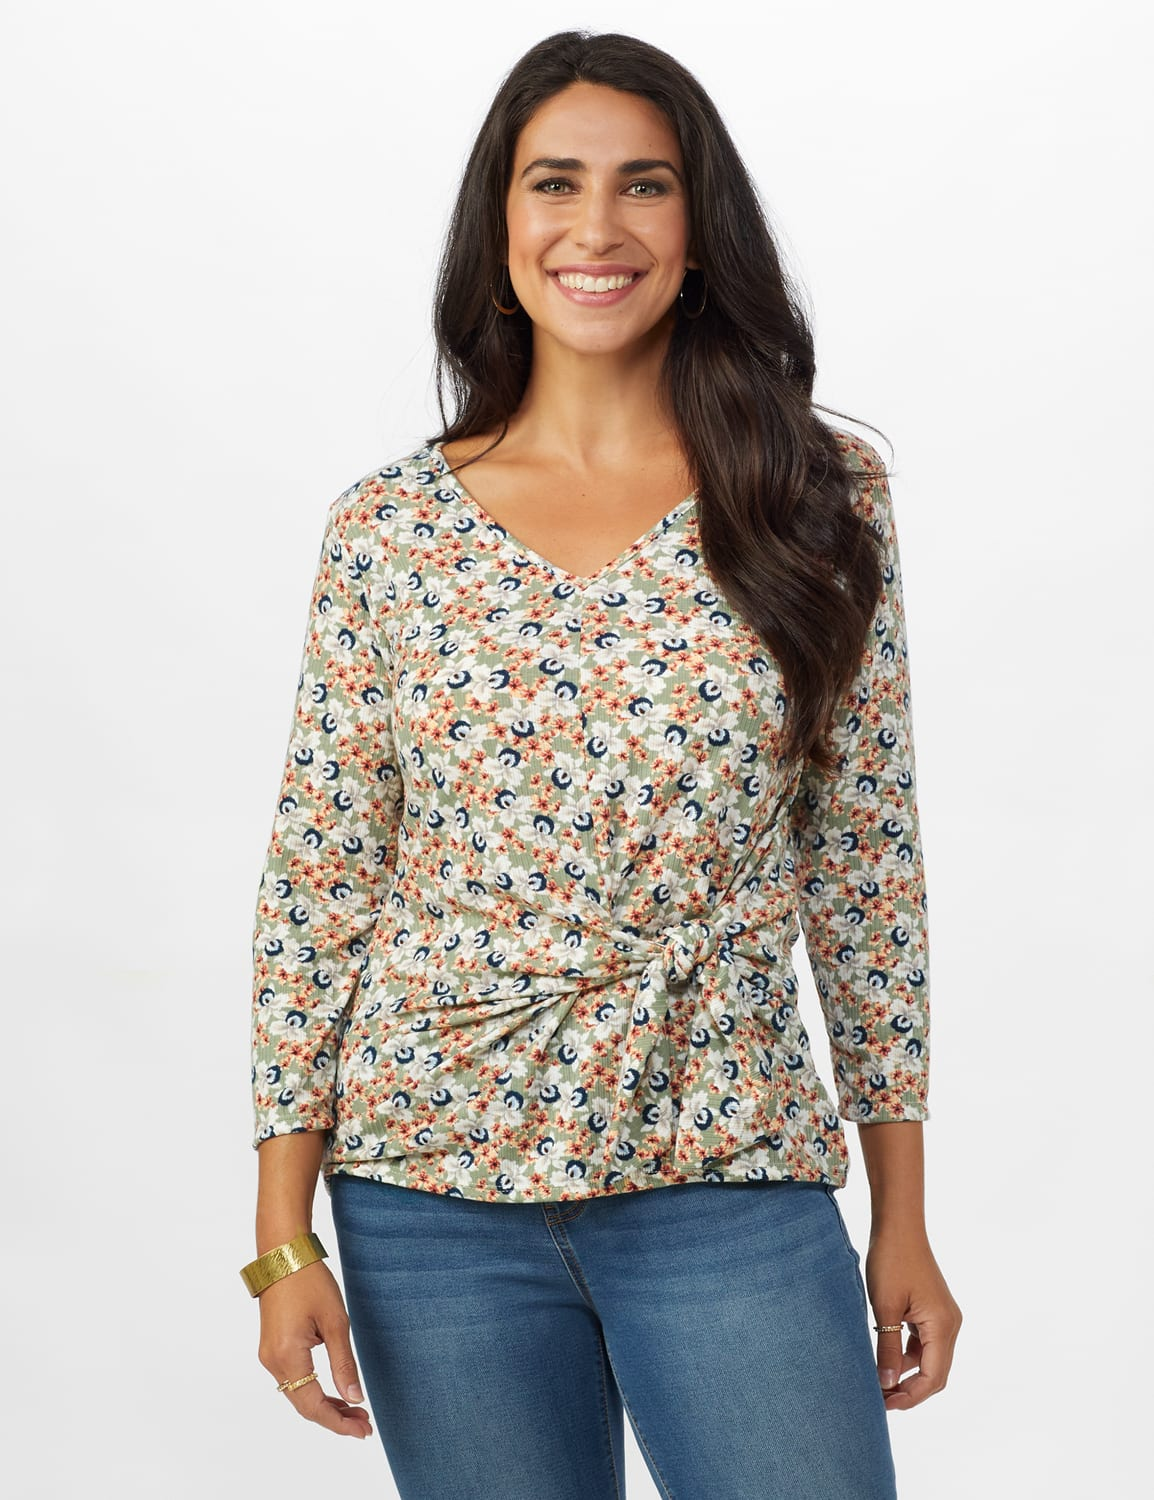 Small Floral Tie Front Knit Top - Sage/Peach - Front